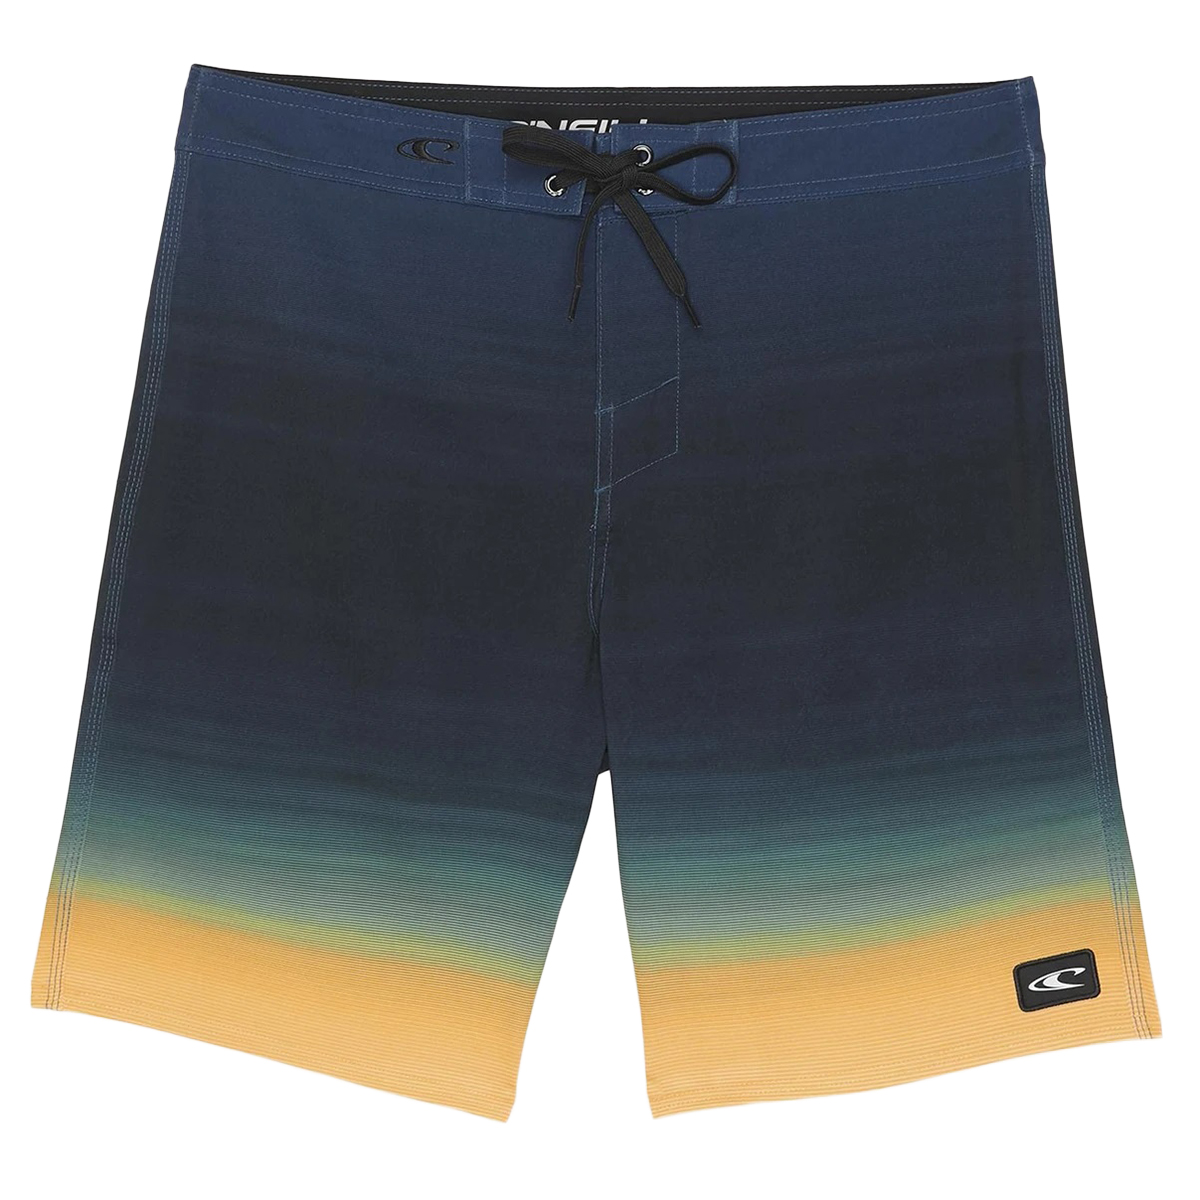 O'neill Men's Corban Boardshorts - Blue, 36